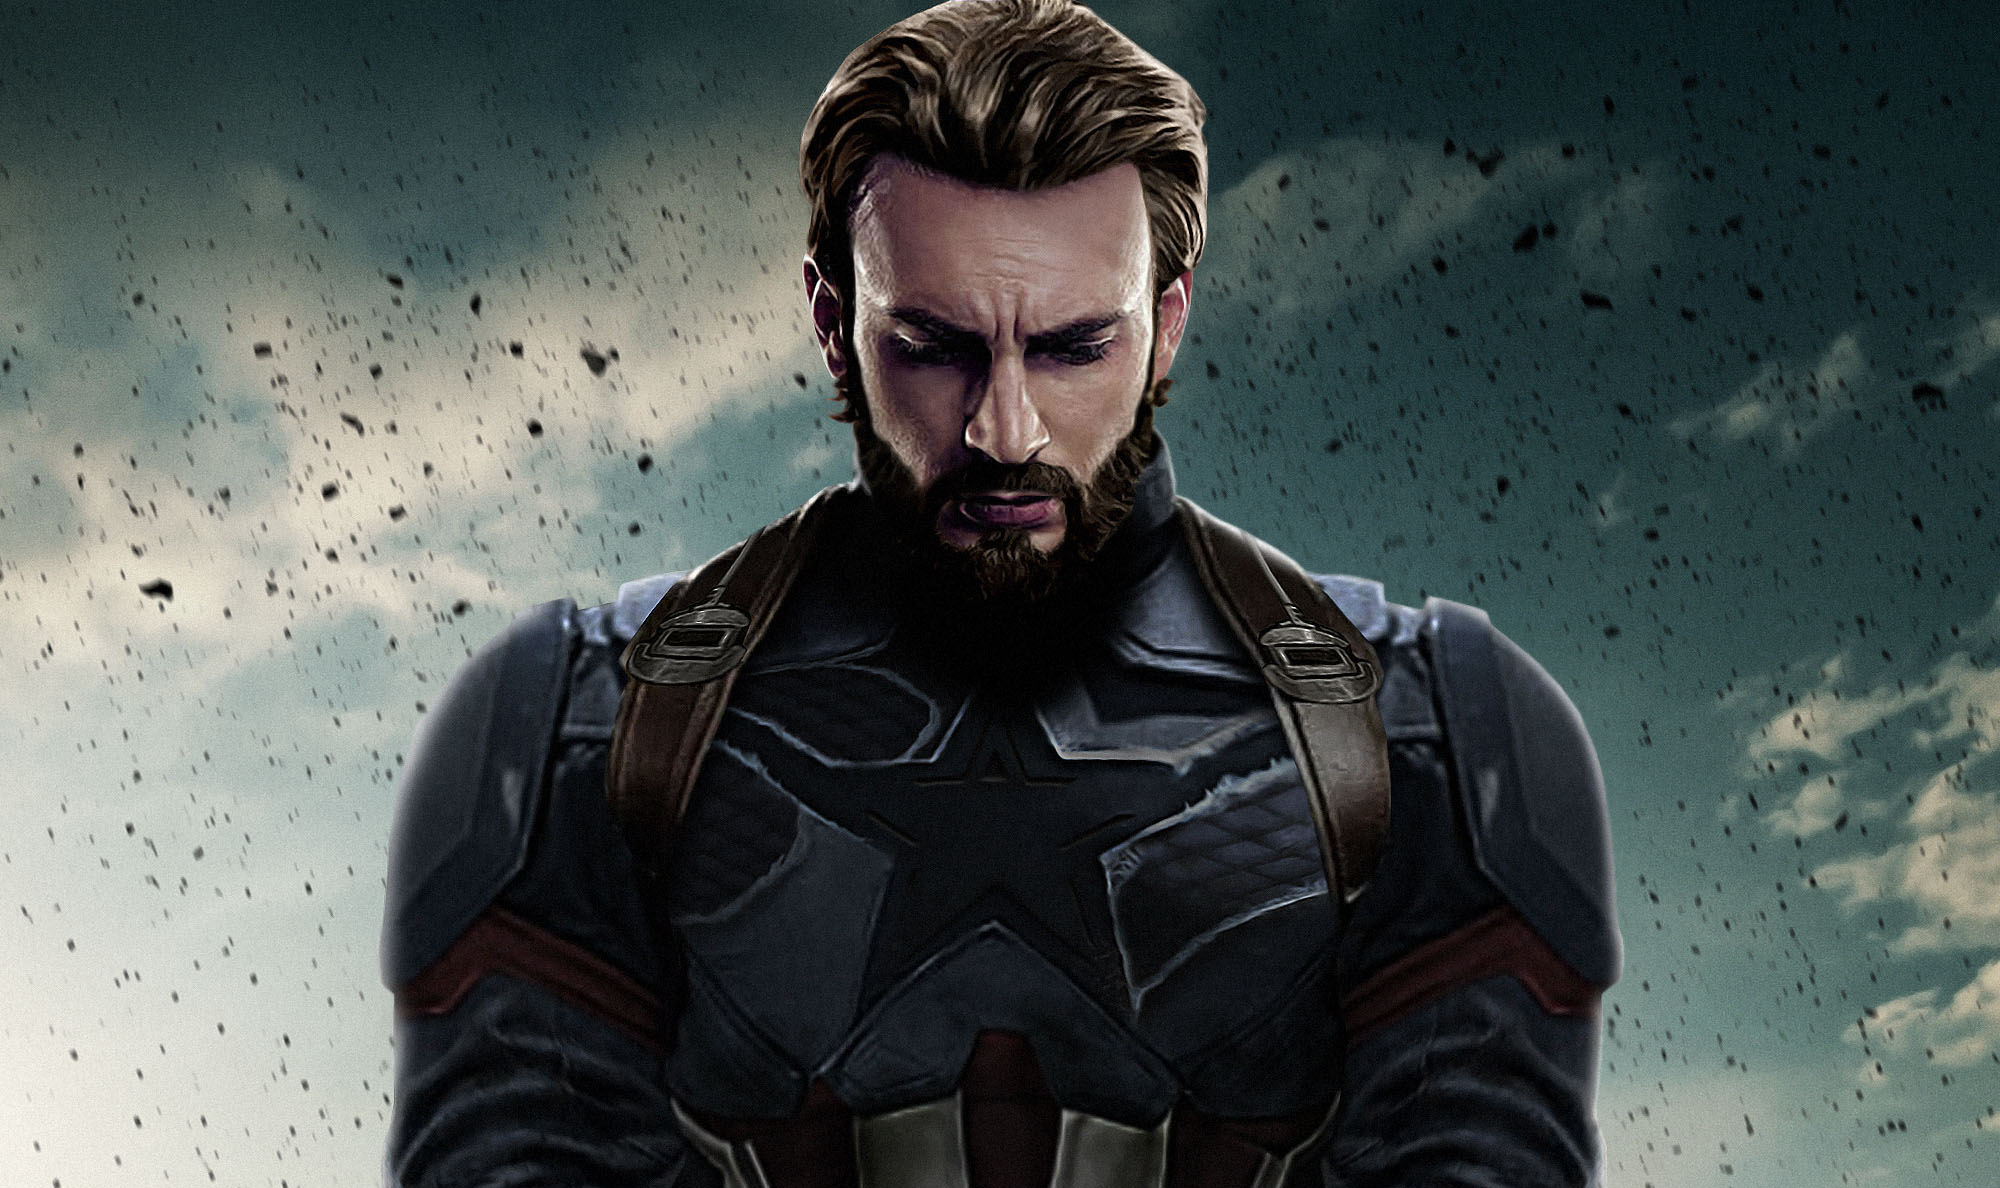 Captain America Avengers Infinity War 2018 Hd Movies 4k Wallpapers